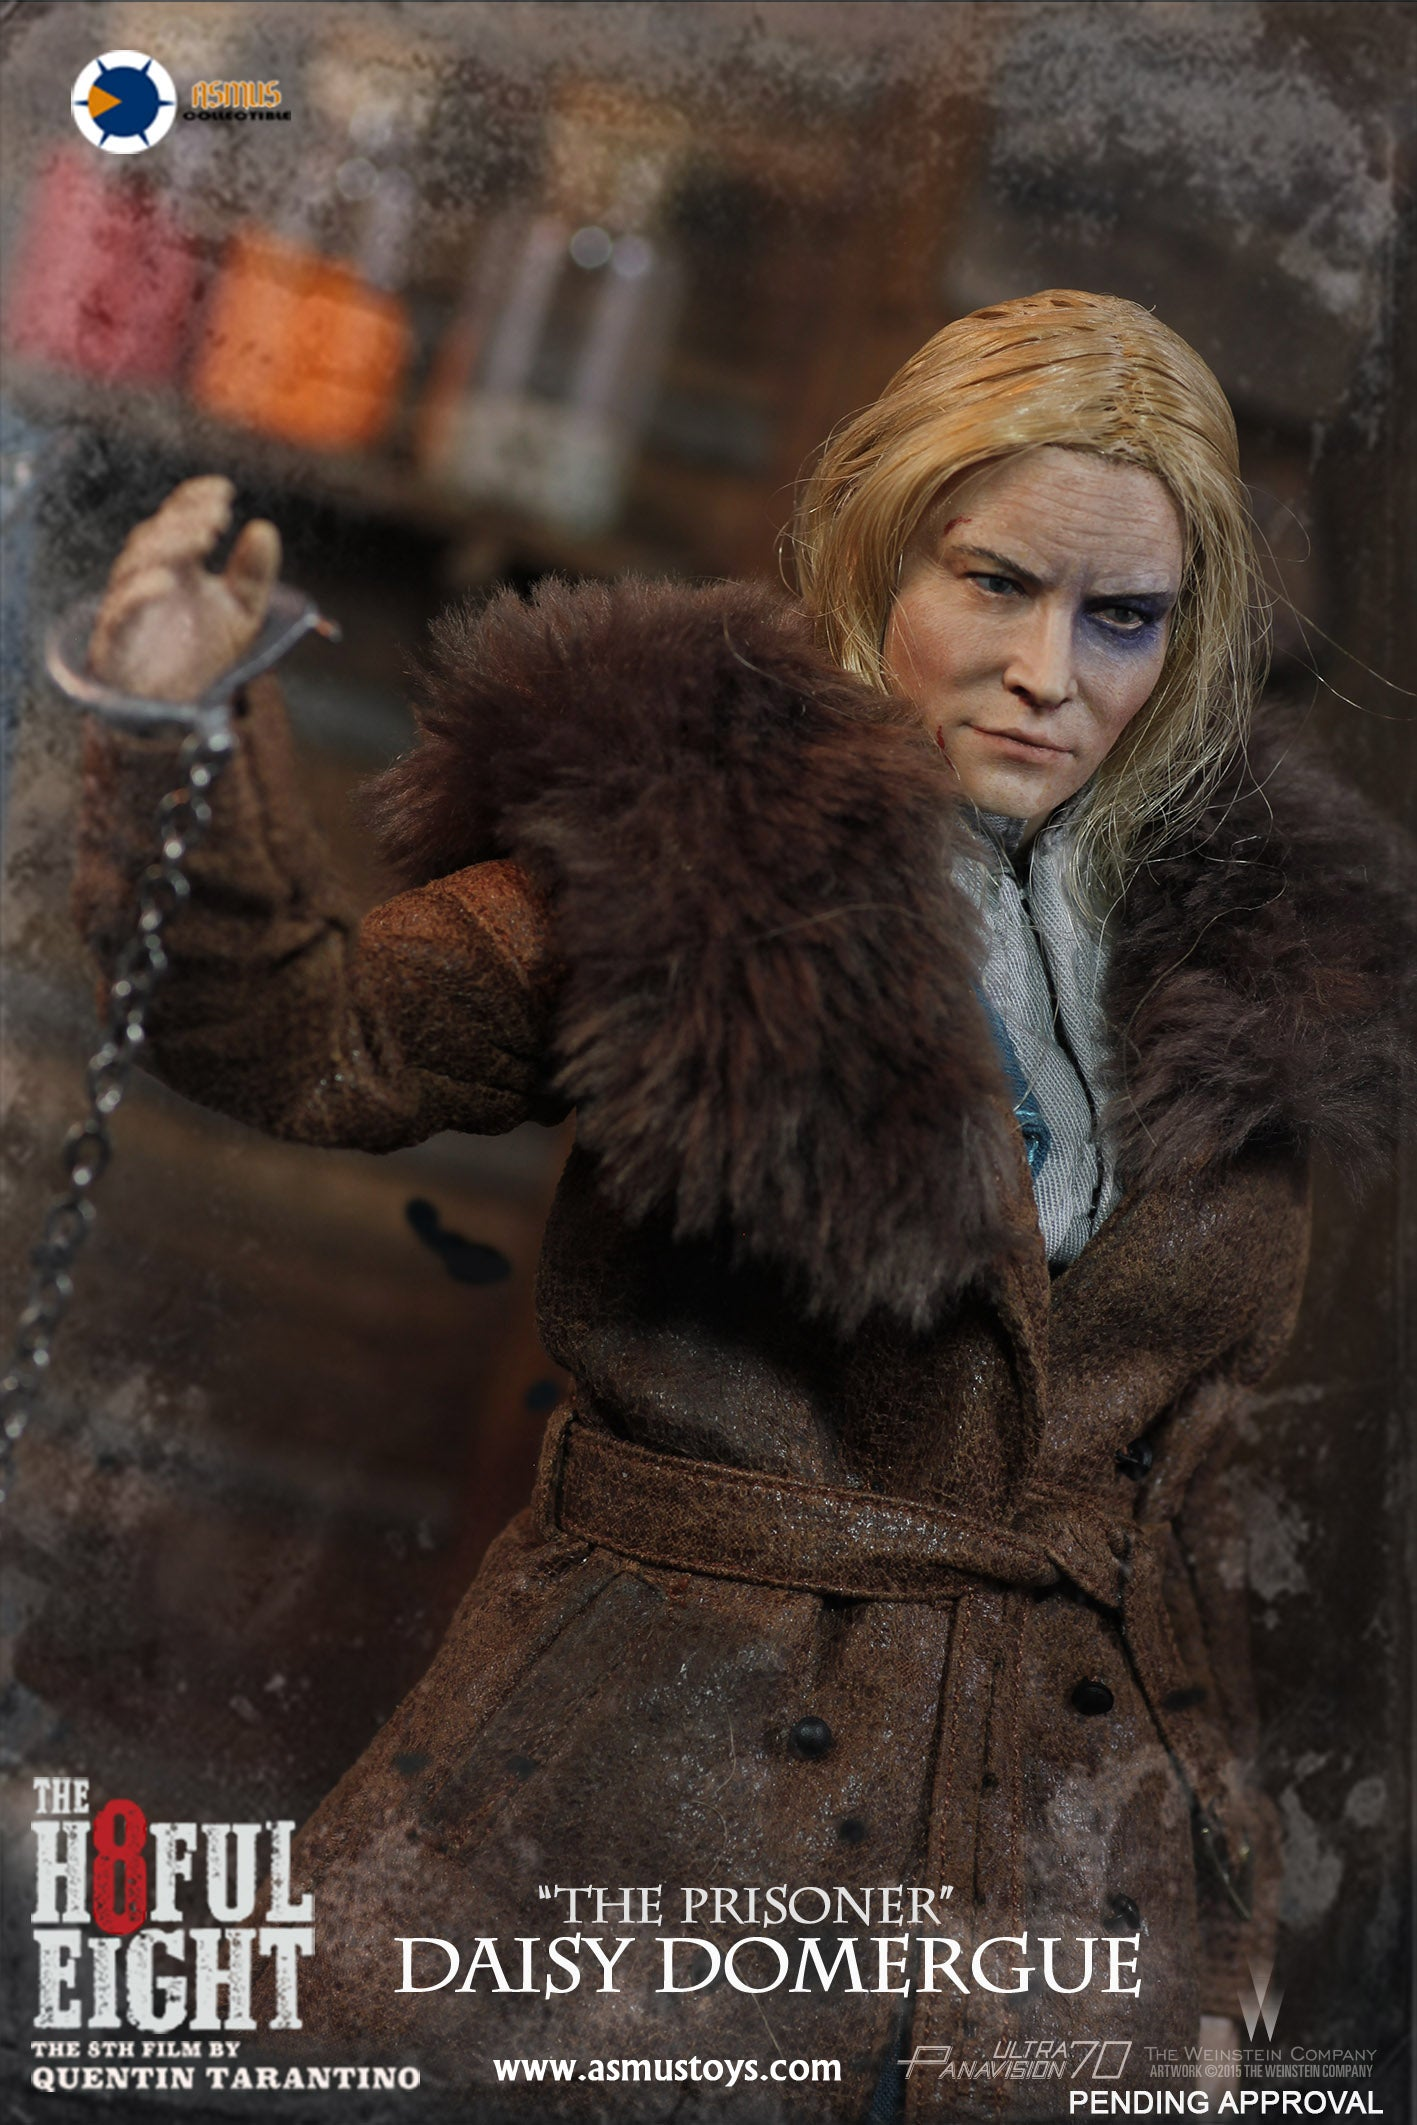 Asmus Toys - H803 - The Hateful Eight Series - Daisy Domergue